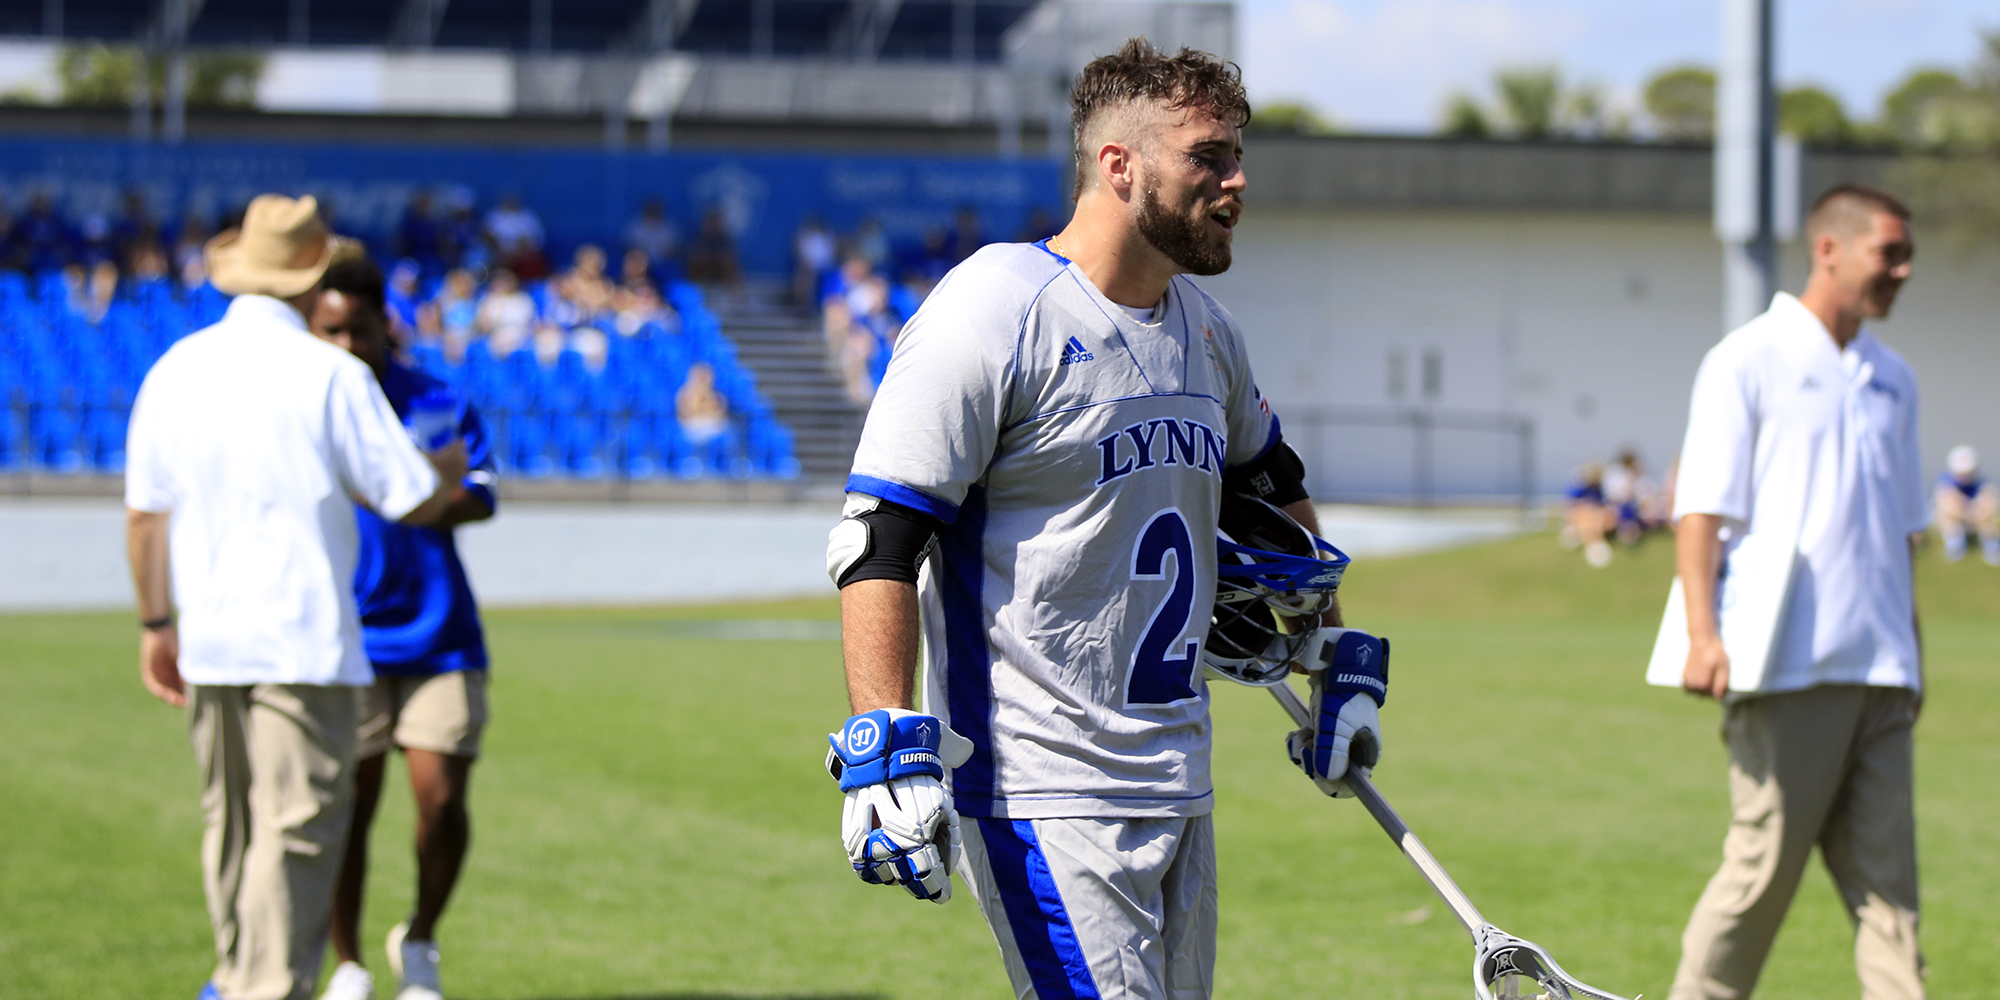 Kalish Selected for USILA Division I/II Senior All-Star Game